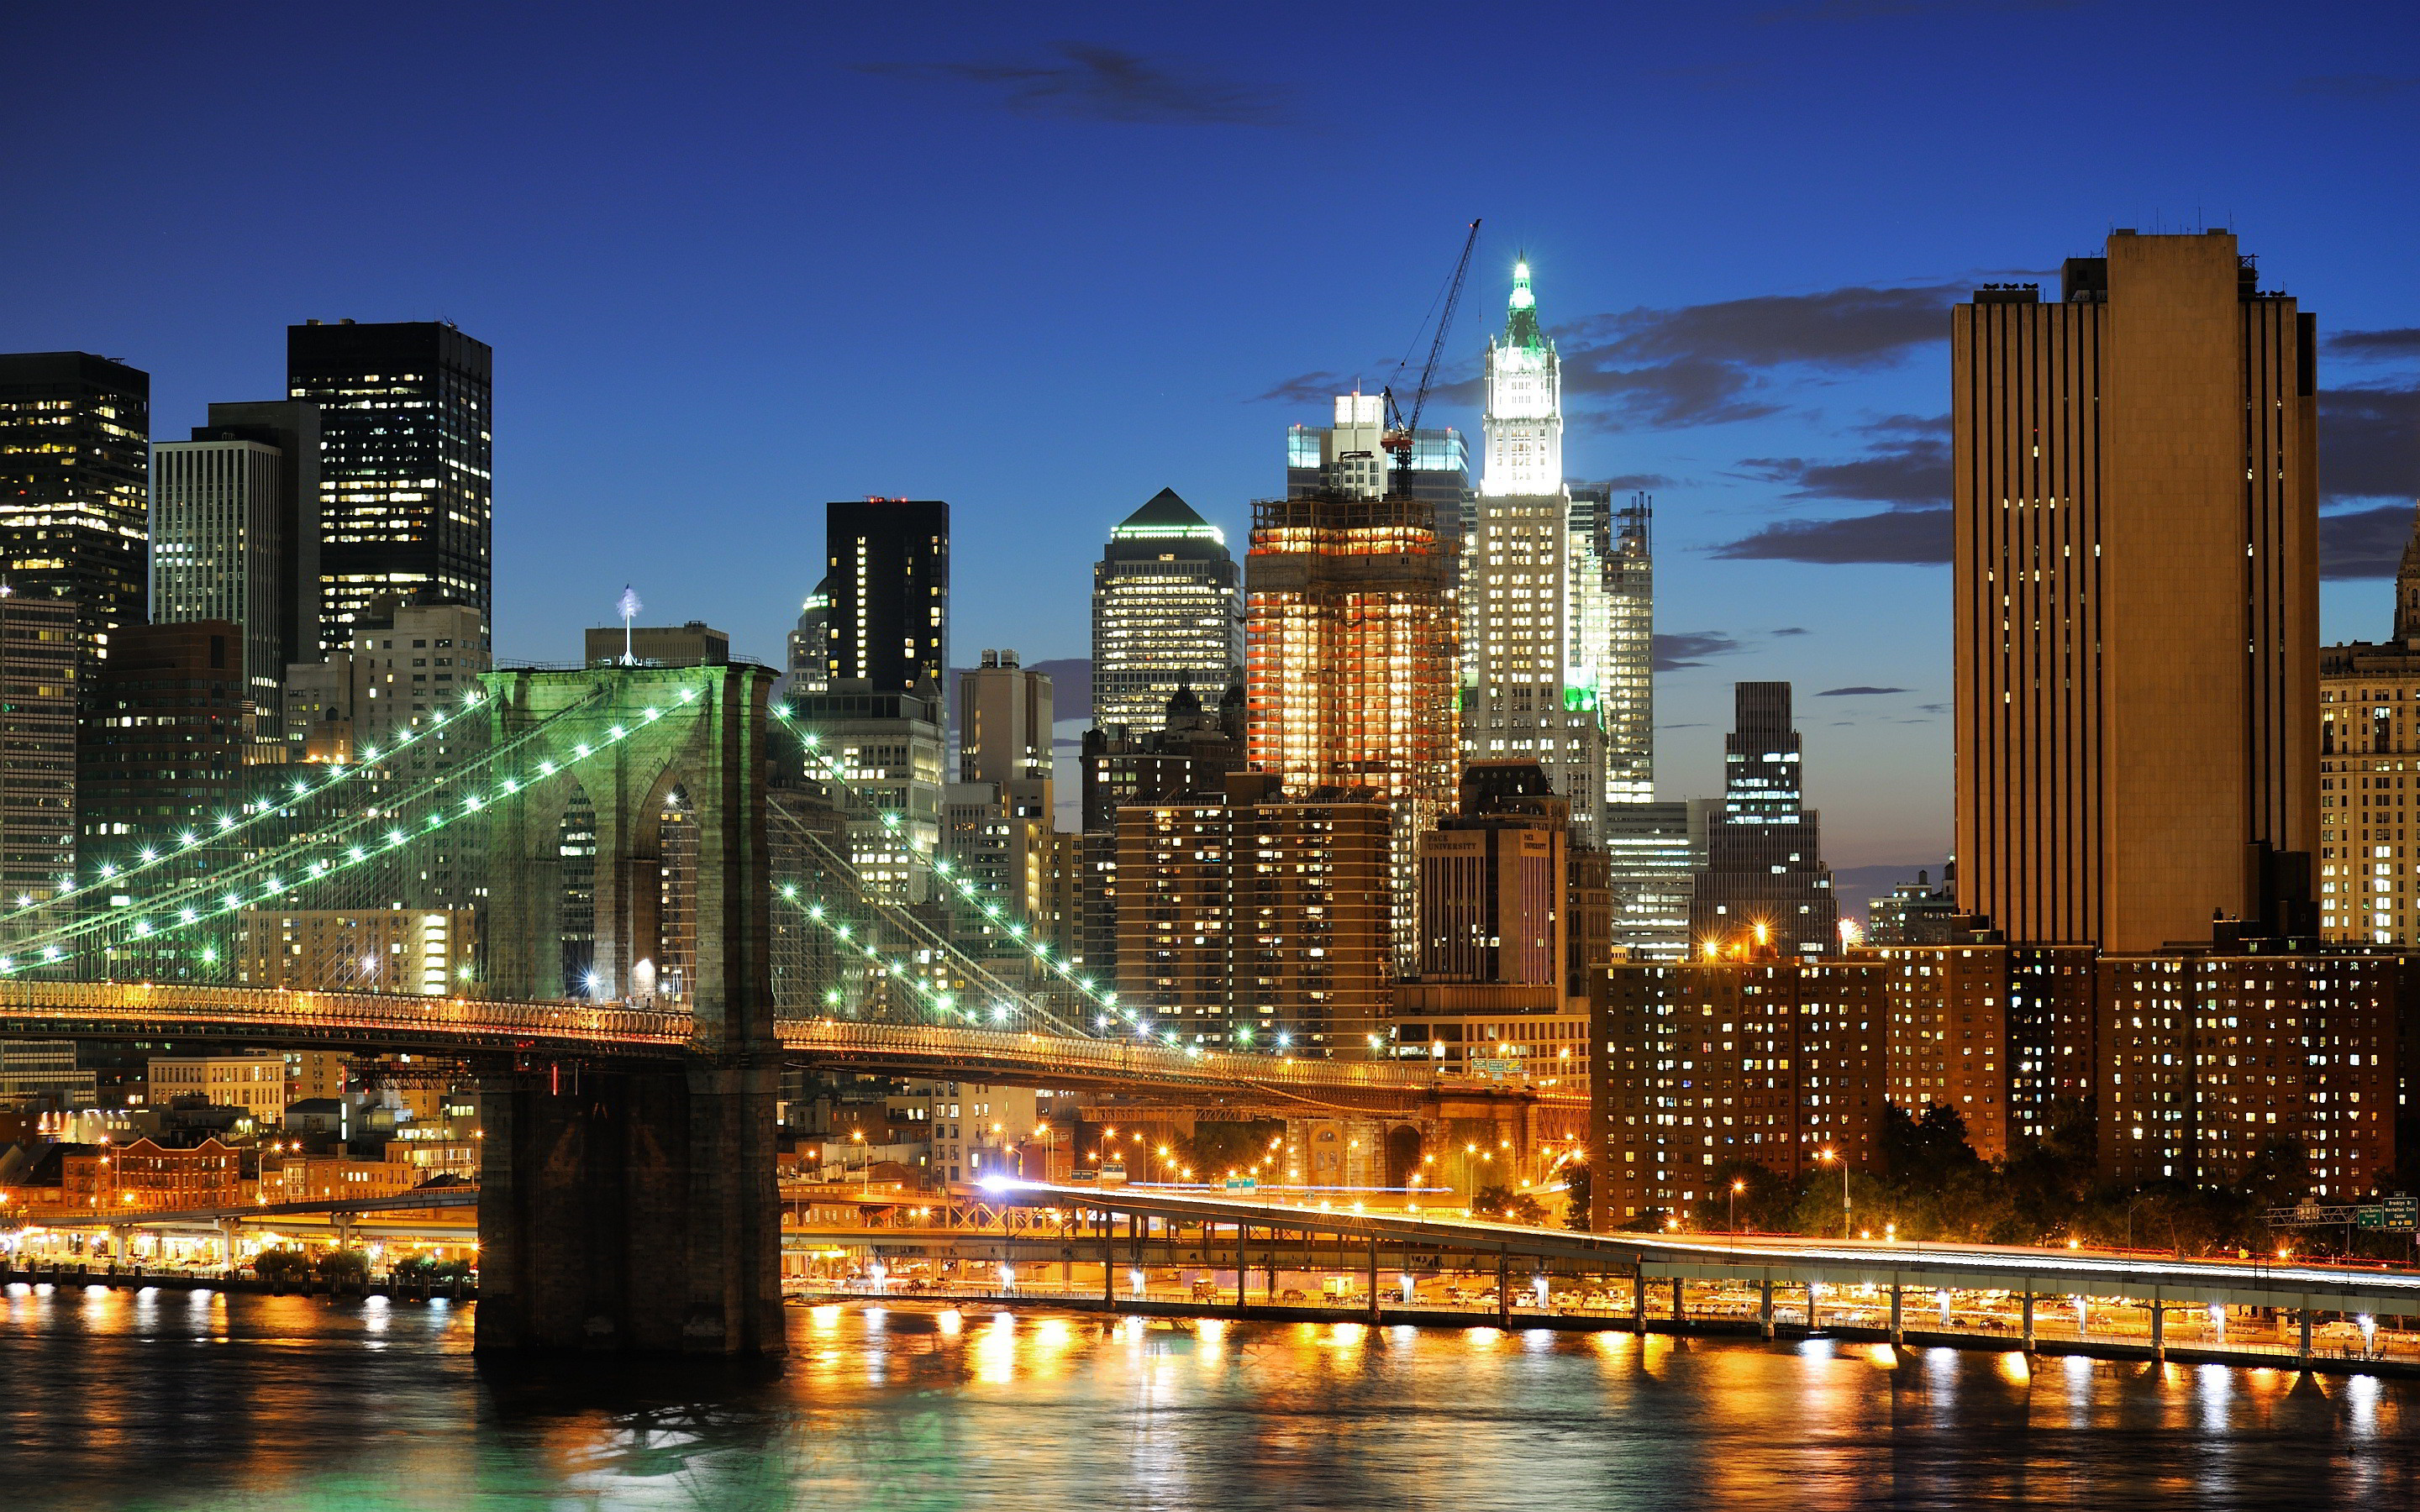 Attractive City Manhattan Bridge Double Decker New - New York City Hd , HD Wallpaper & Backgrounds